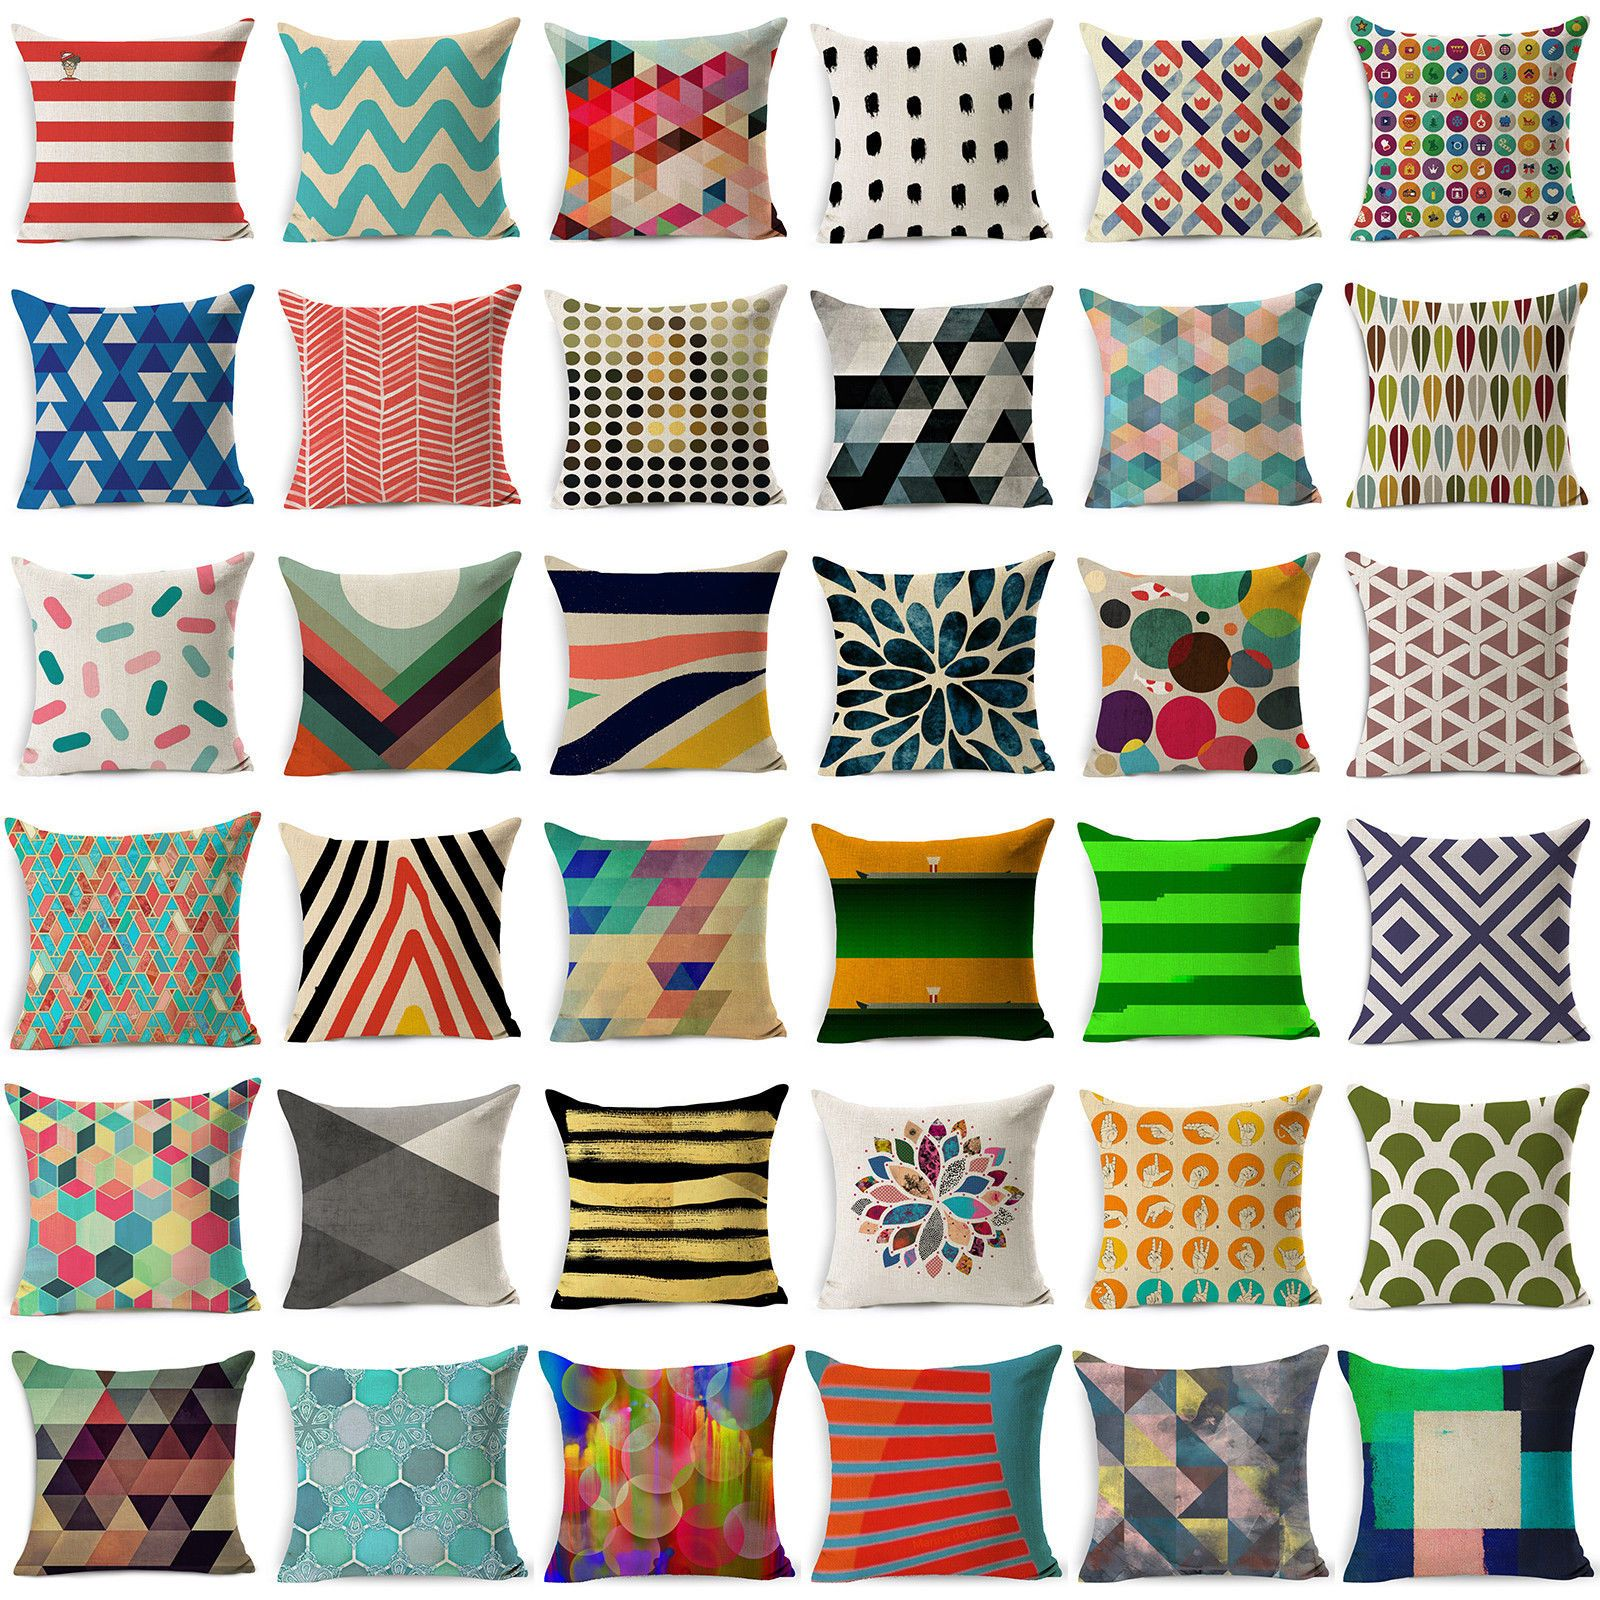 2.46 GBP - Vintage Geometric Cotton Linen Throw Pillow Case Cushion ...